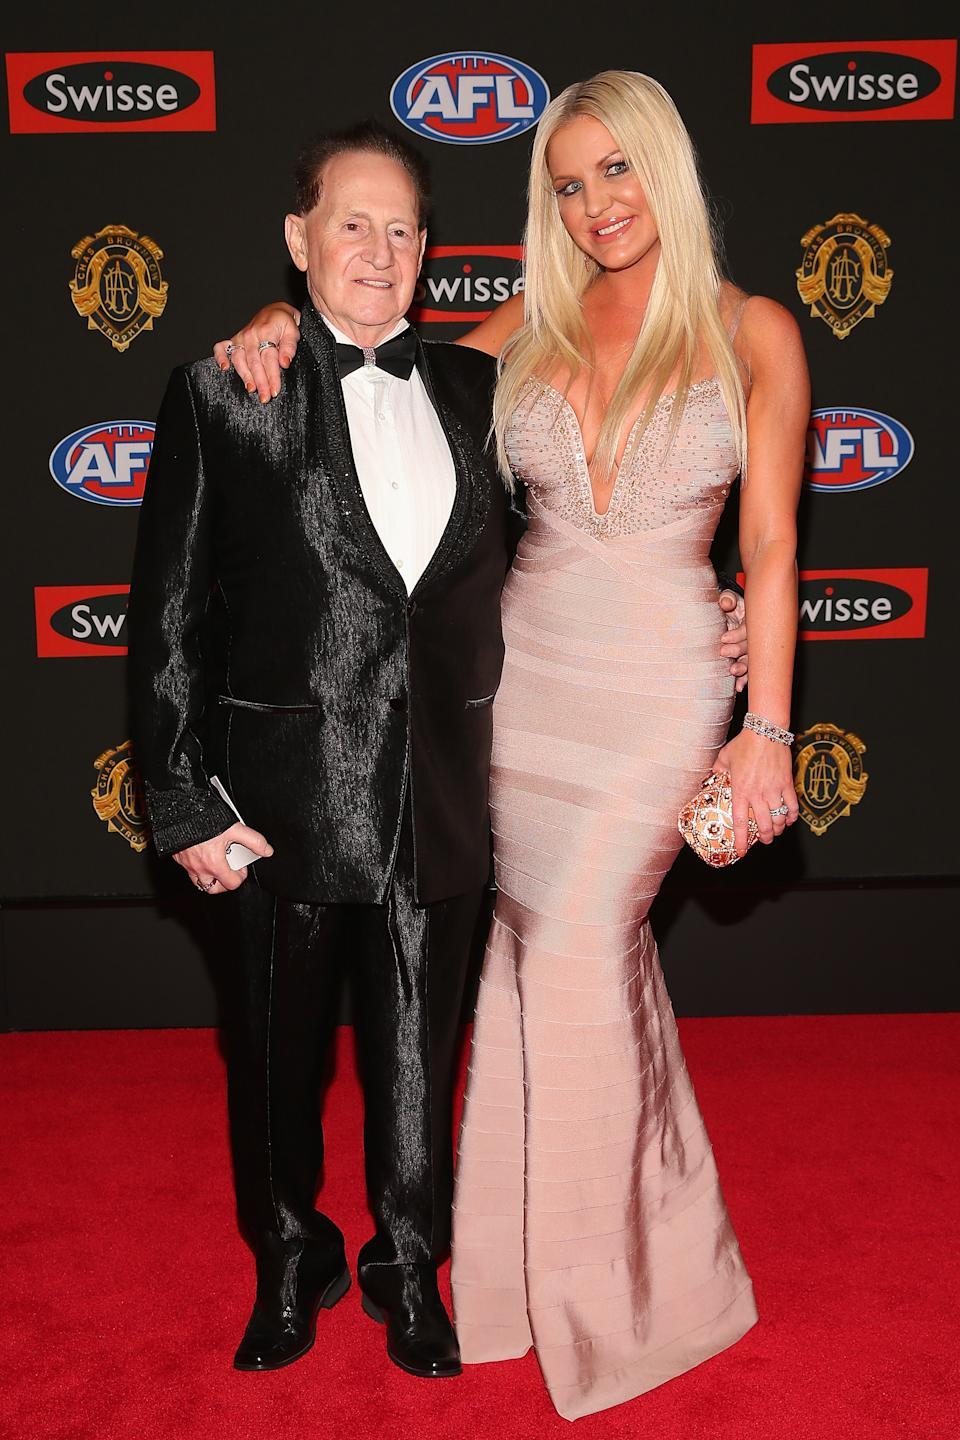 Brynne was famously married to millionaire Geoffrey Edelsten for four years, before separating in 2014. Photo: Getty